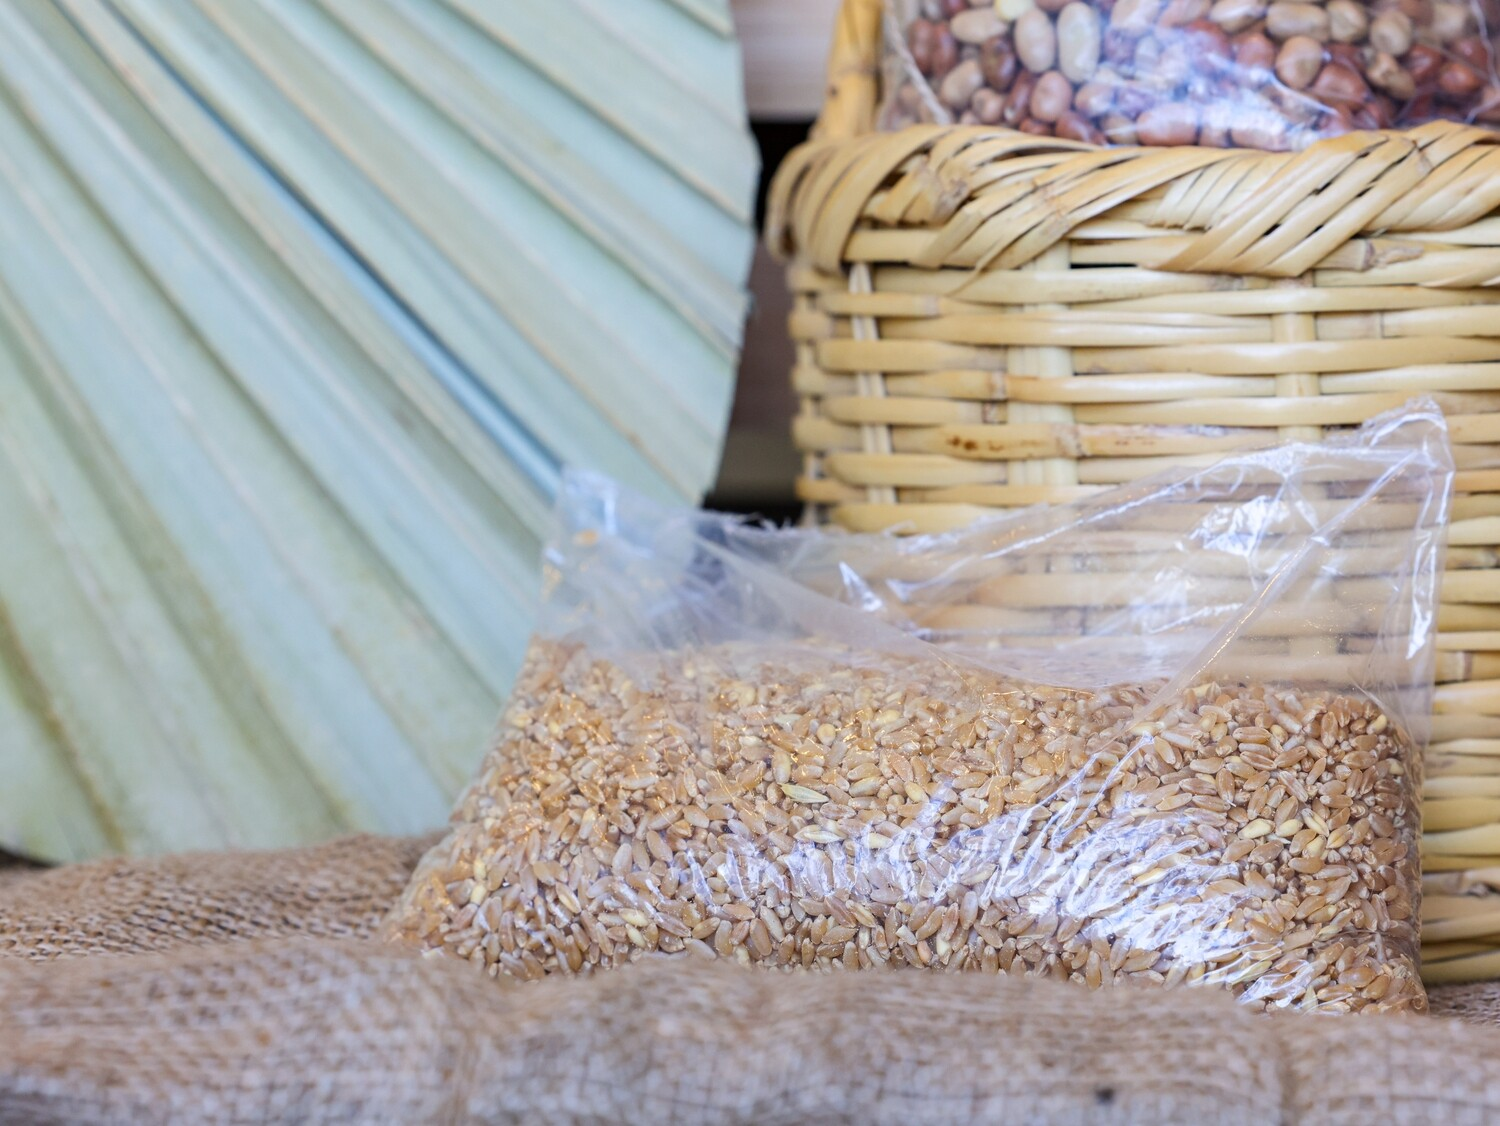 Wheat Grains (Bag) - Nature by Marc Beyrouthy